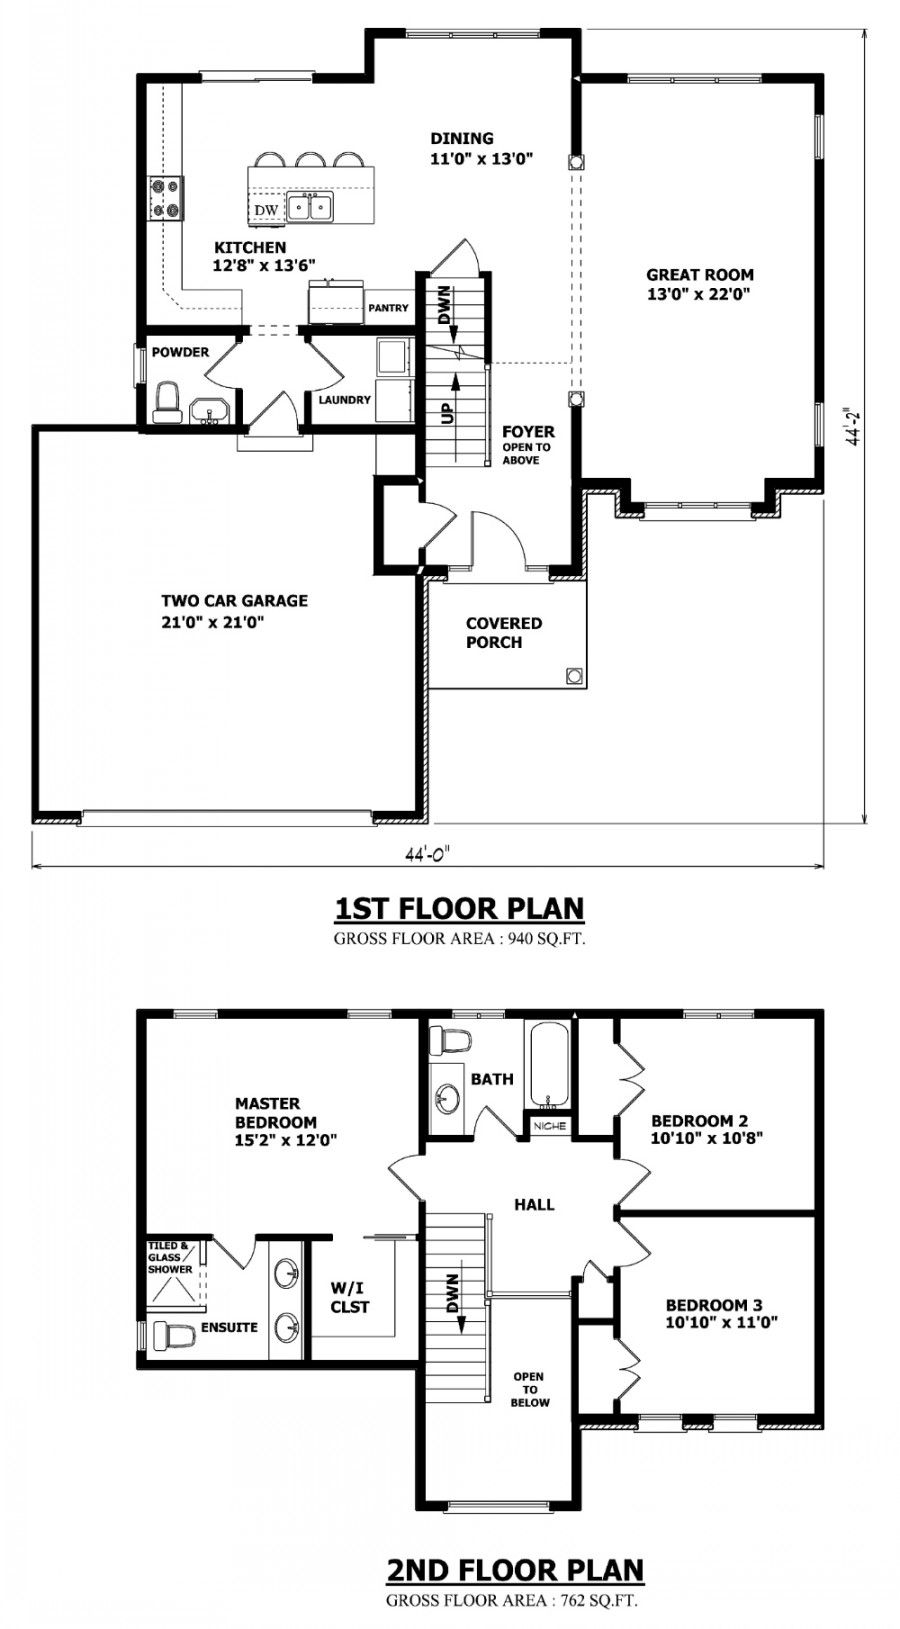 2 story house floor plans home designs custom house plans stock house plans garage plans two storey house plans 1157